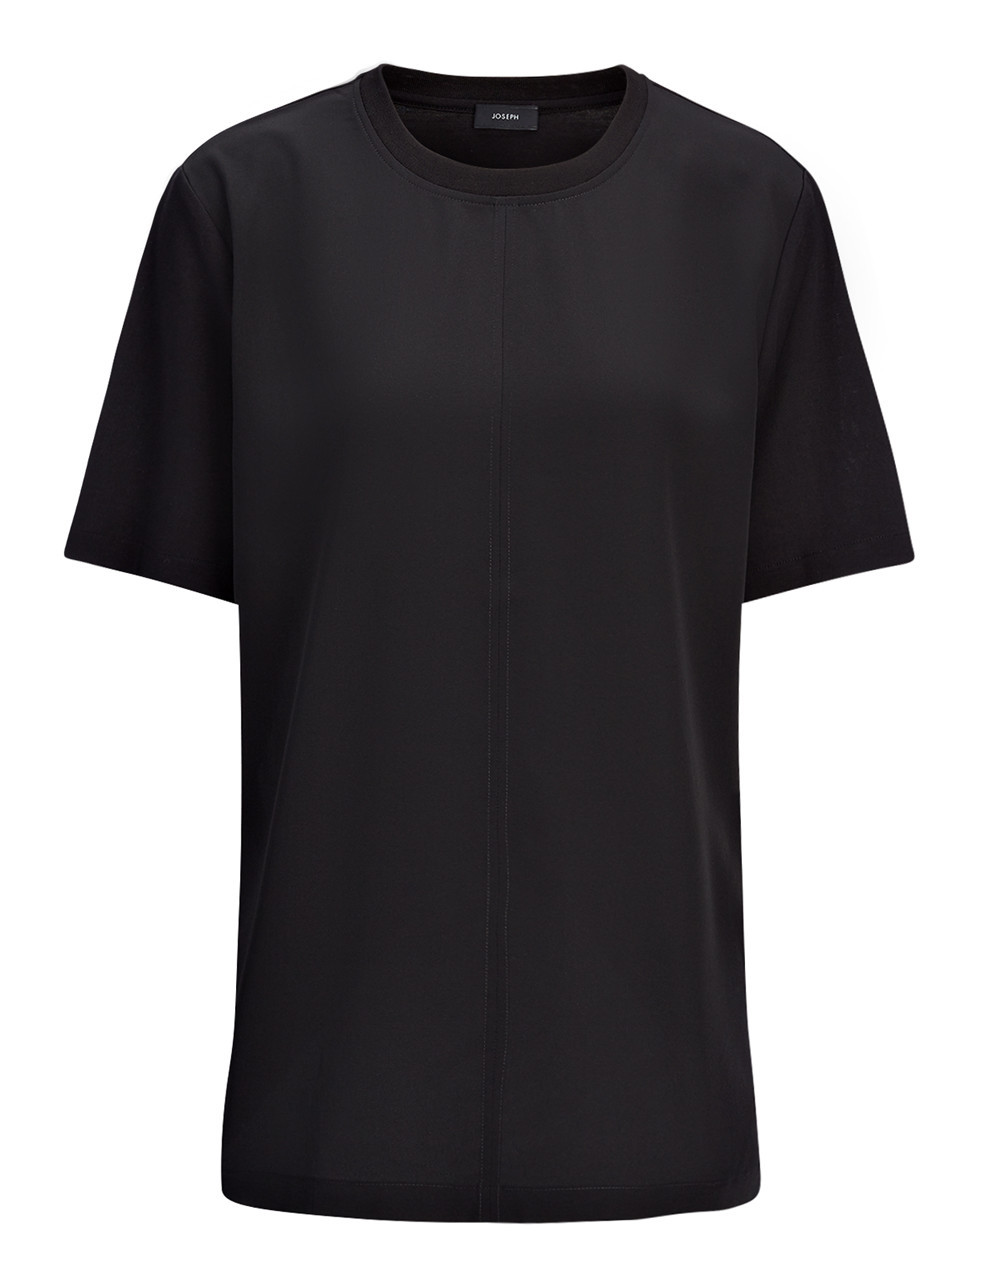 Jersey And Crepe De Chine Top In Black - pattern: plain; style: t-shirt; predominant colour: black; occasions: casual, creative work; length: standard; fibres: silk - mix; fit: straight cut; neckline: crew; sleeve length: short sleeve; sleeve style: standard; texture group: crepes; pattern type: fabric; season: s/s 2016; wardrobe: basic